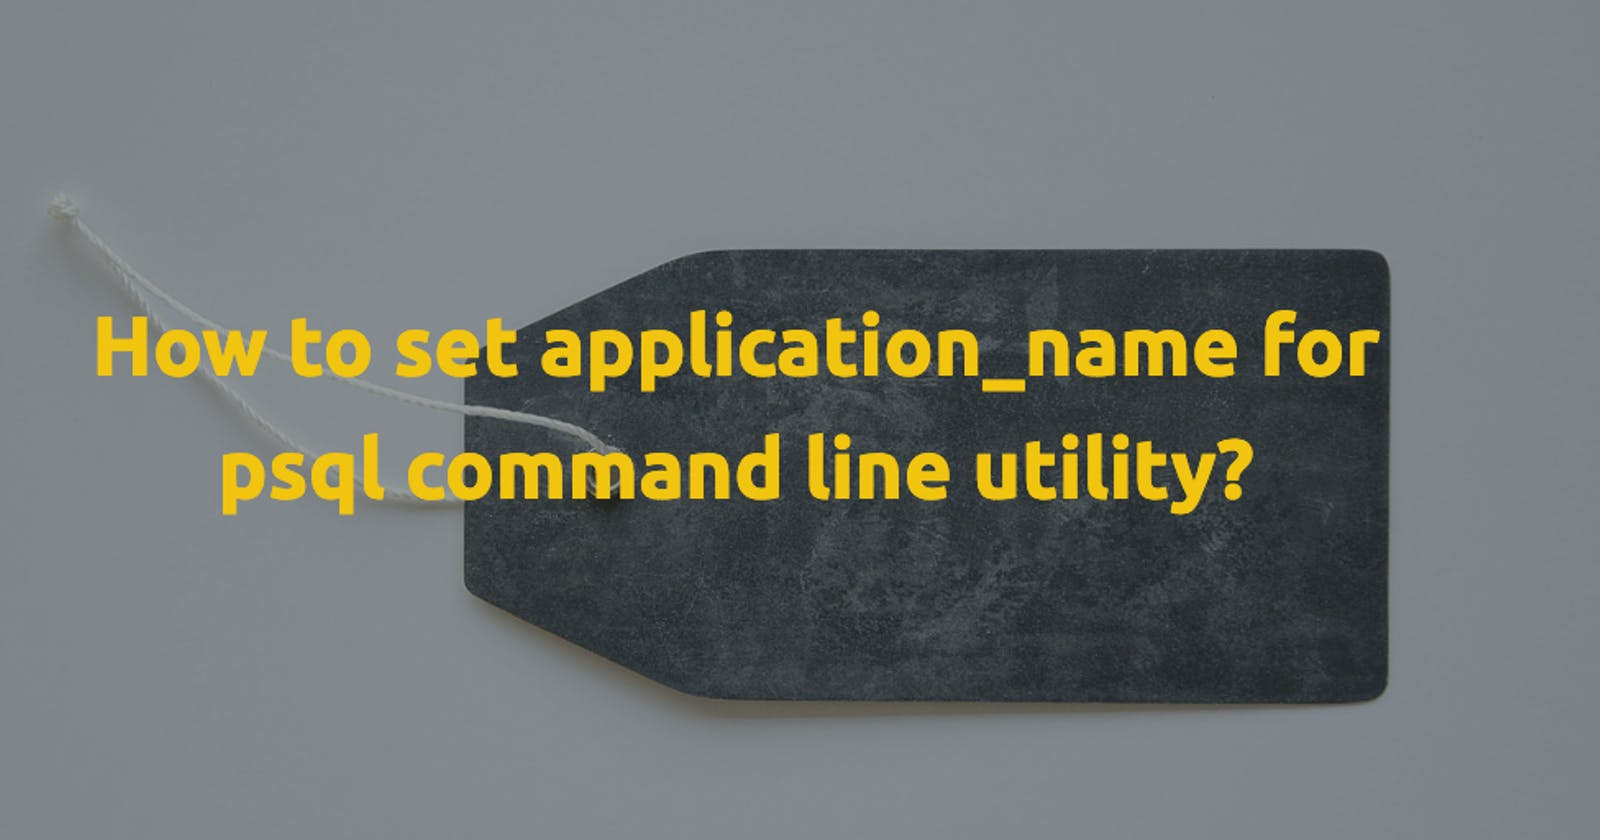 How to set application_name for psql command line utility?